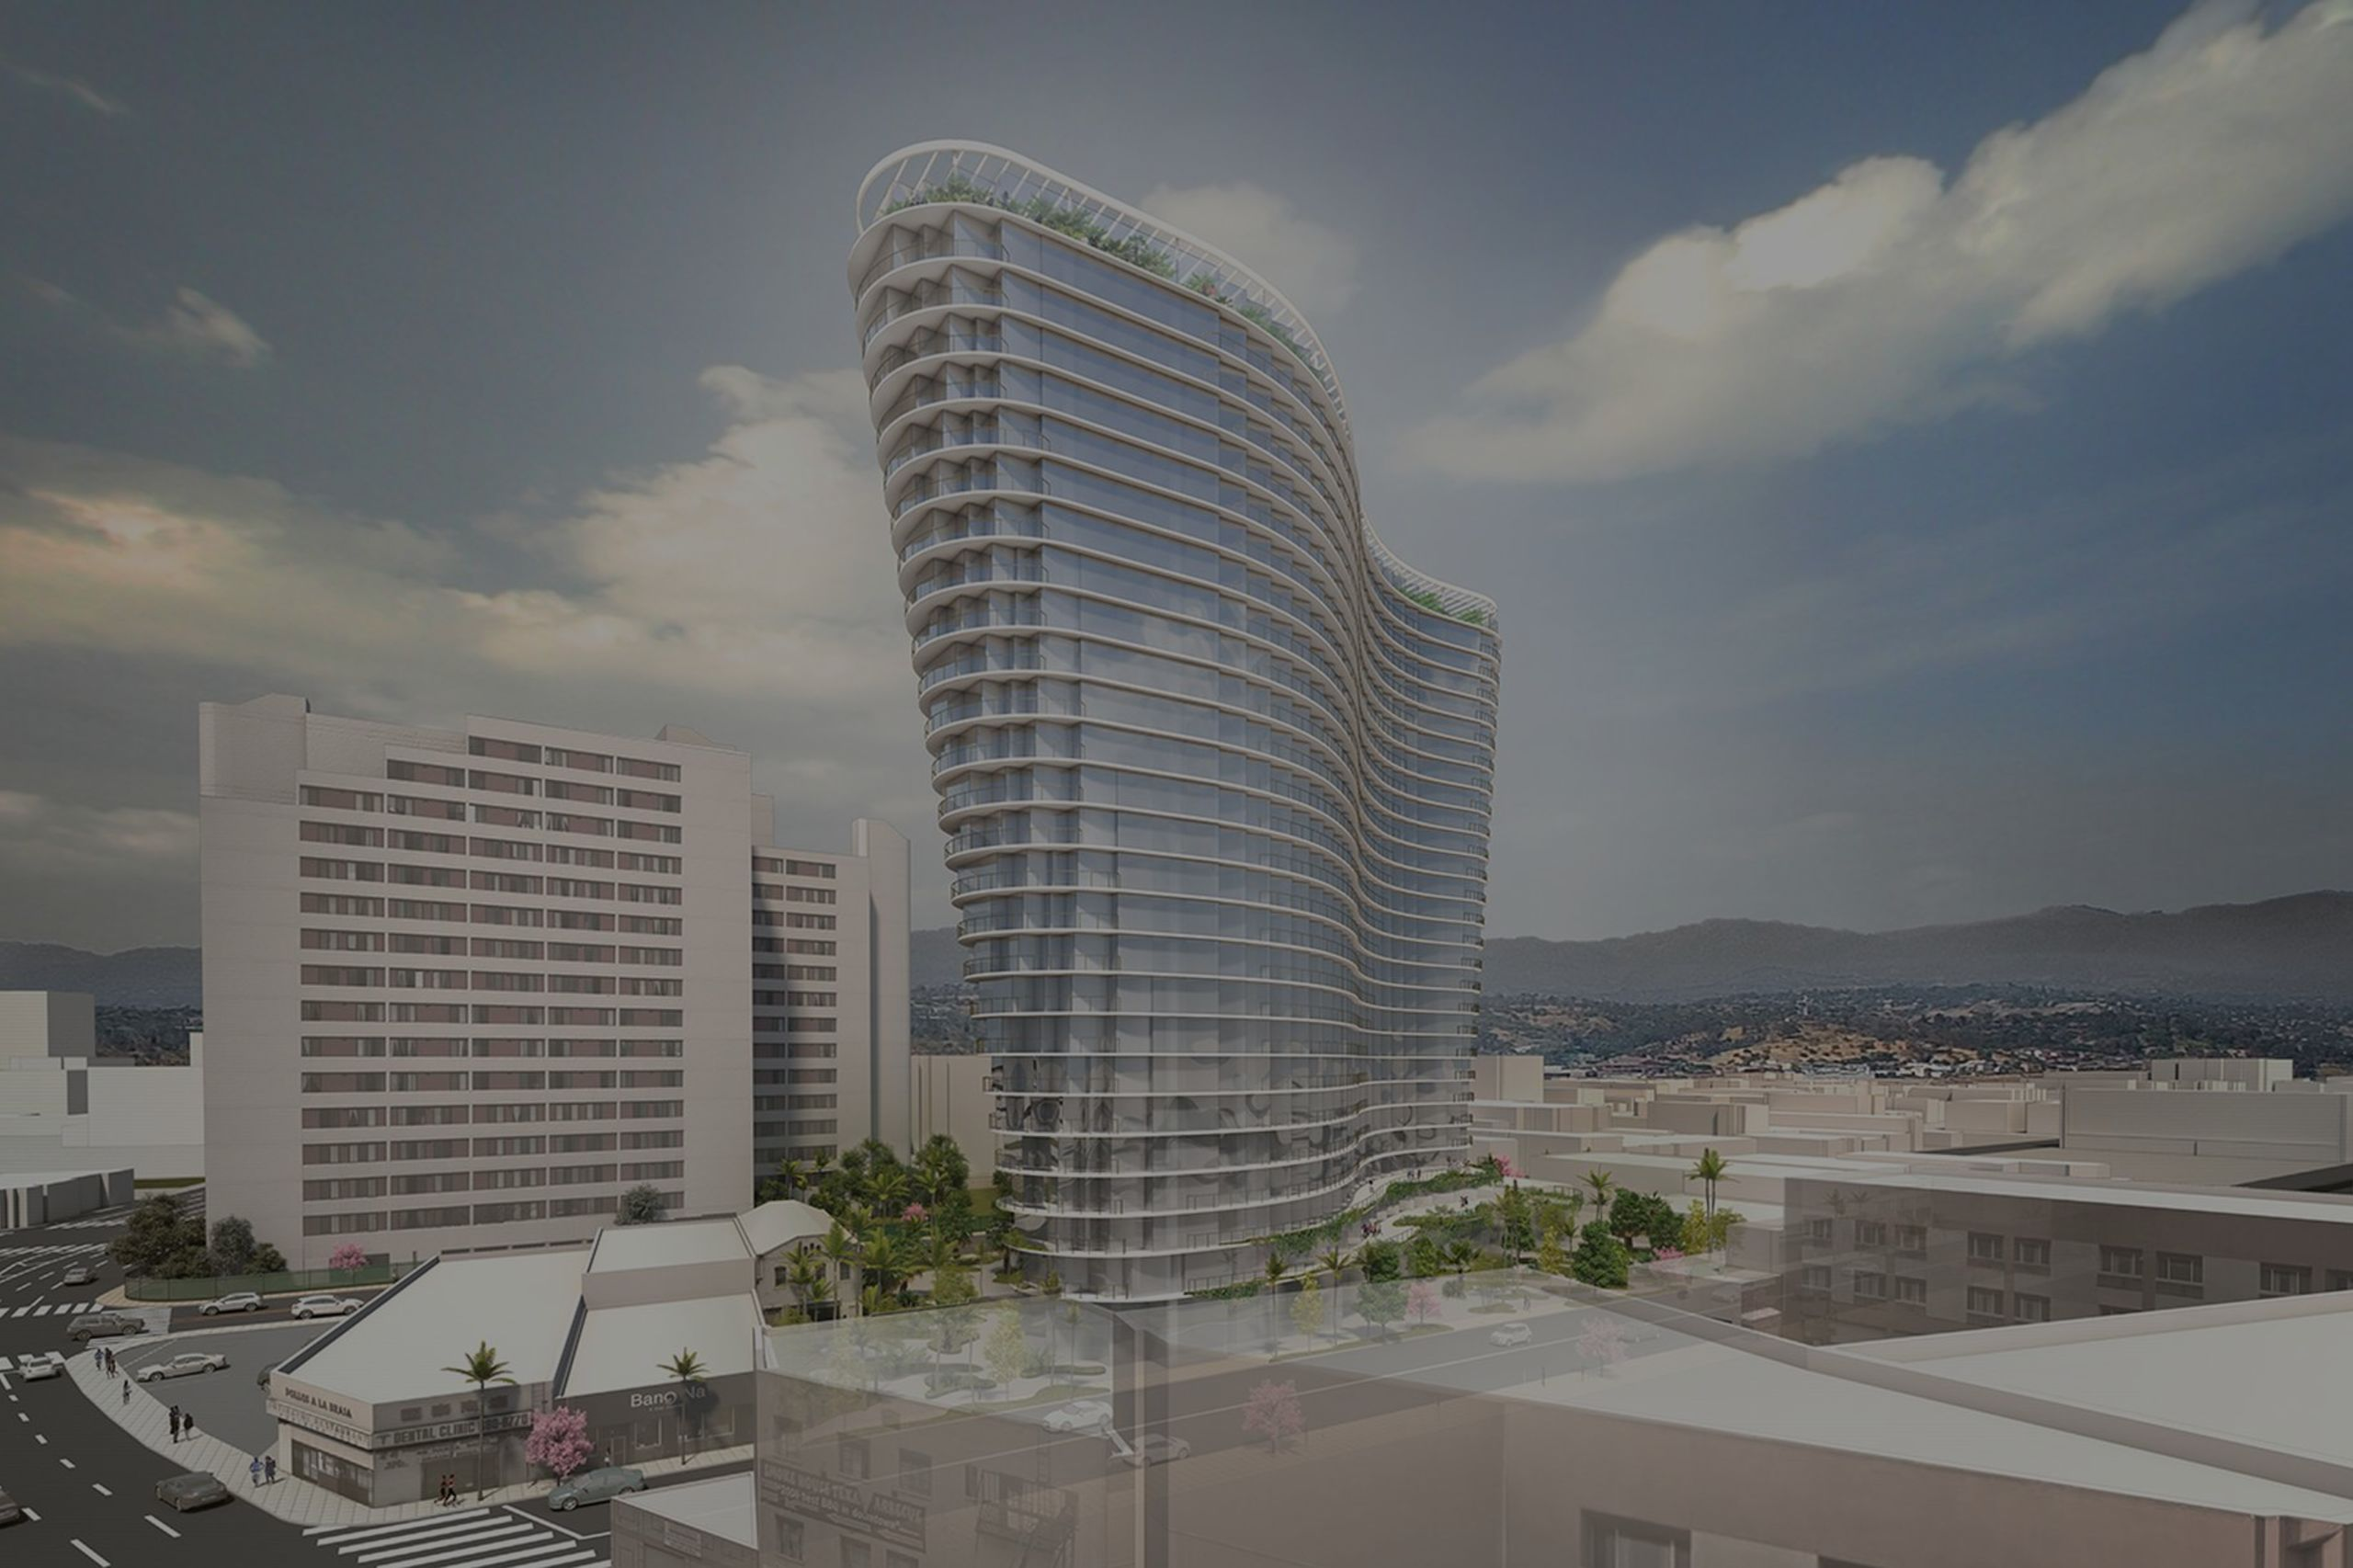 The First Los Angeles Project For Studio Gang: A Wavy, 26-Story Tower In The Heart Of Chinatown